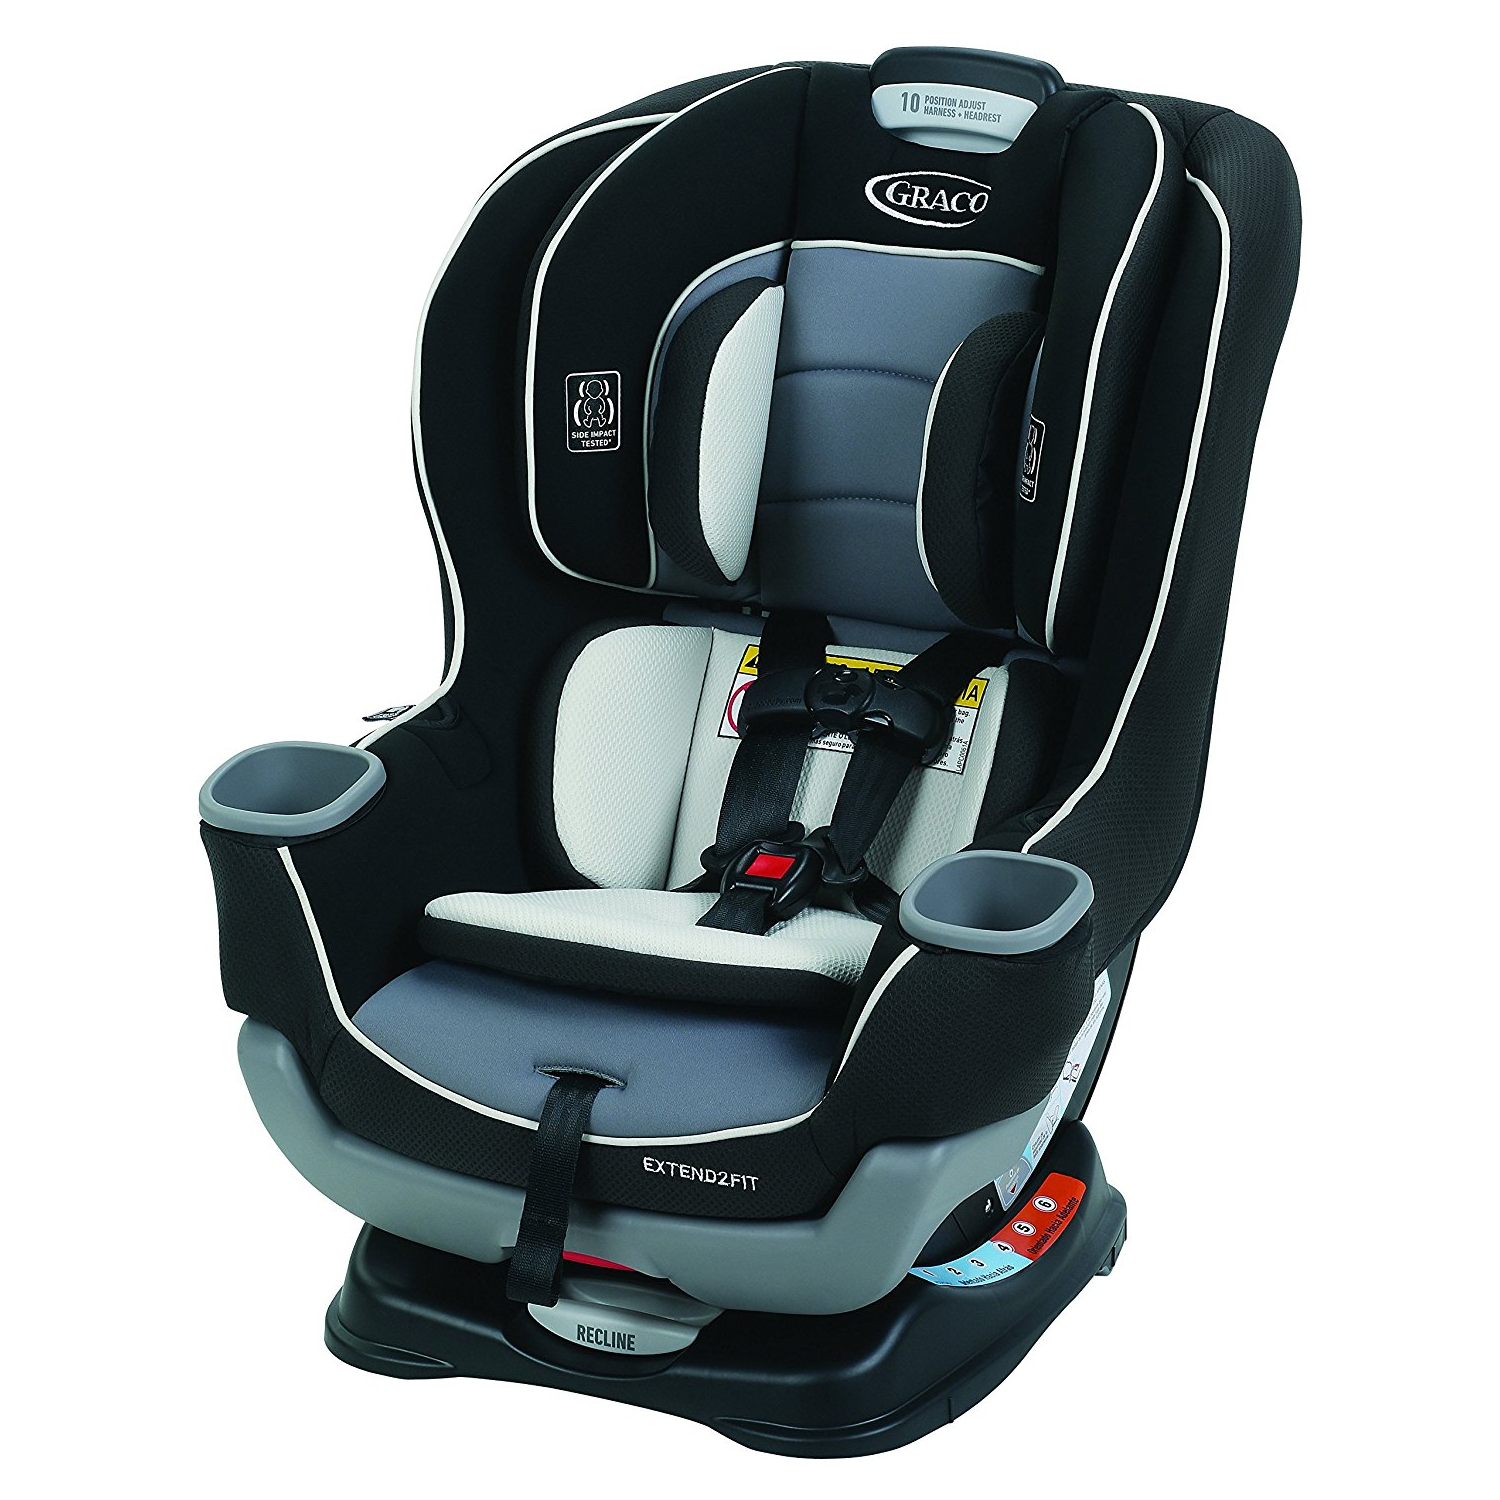 freebies2deals-entend2fitcarseat